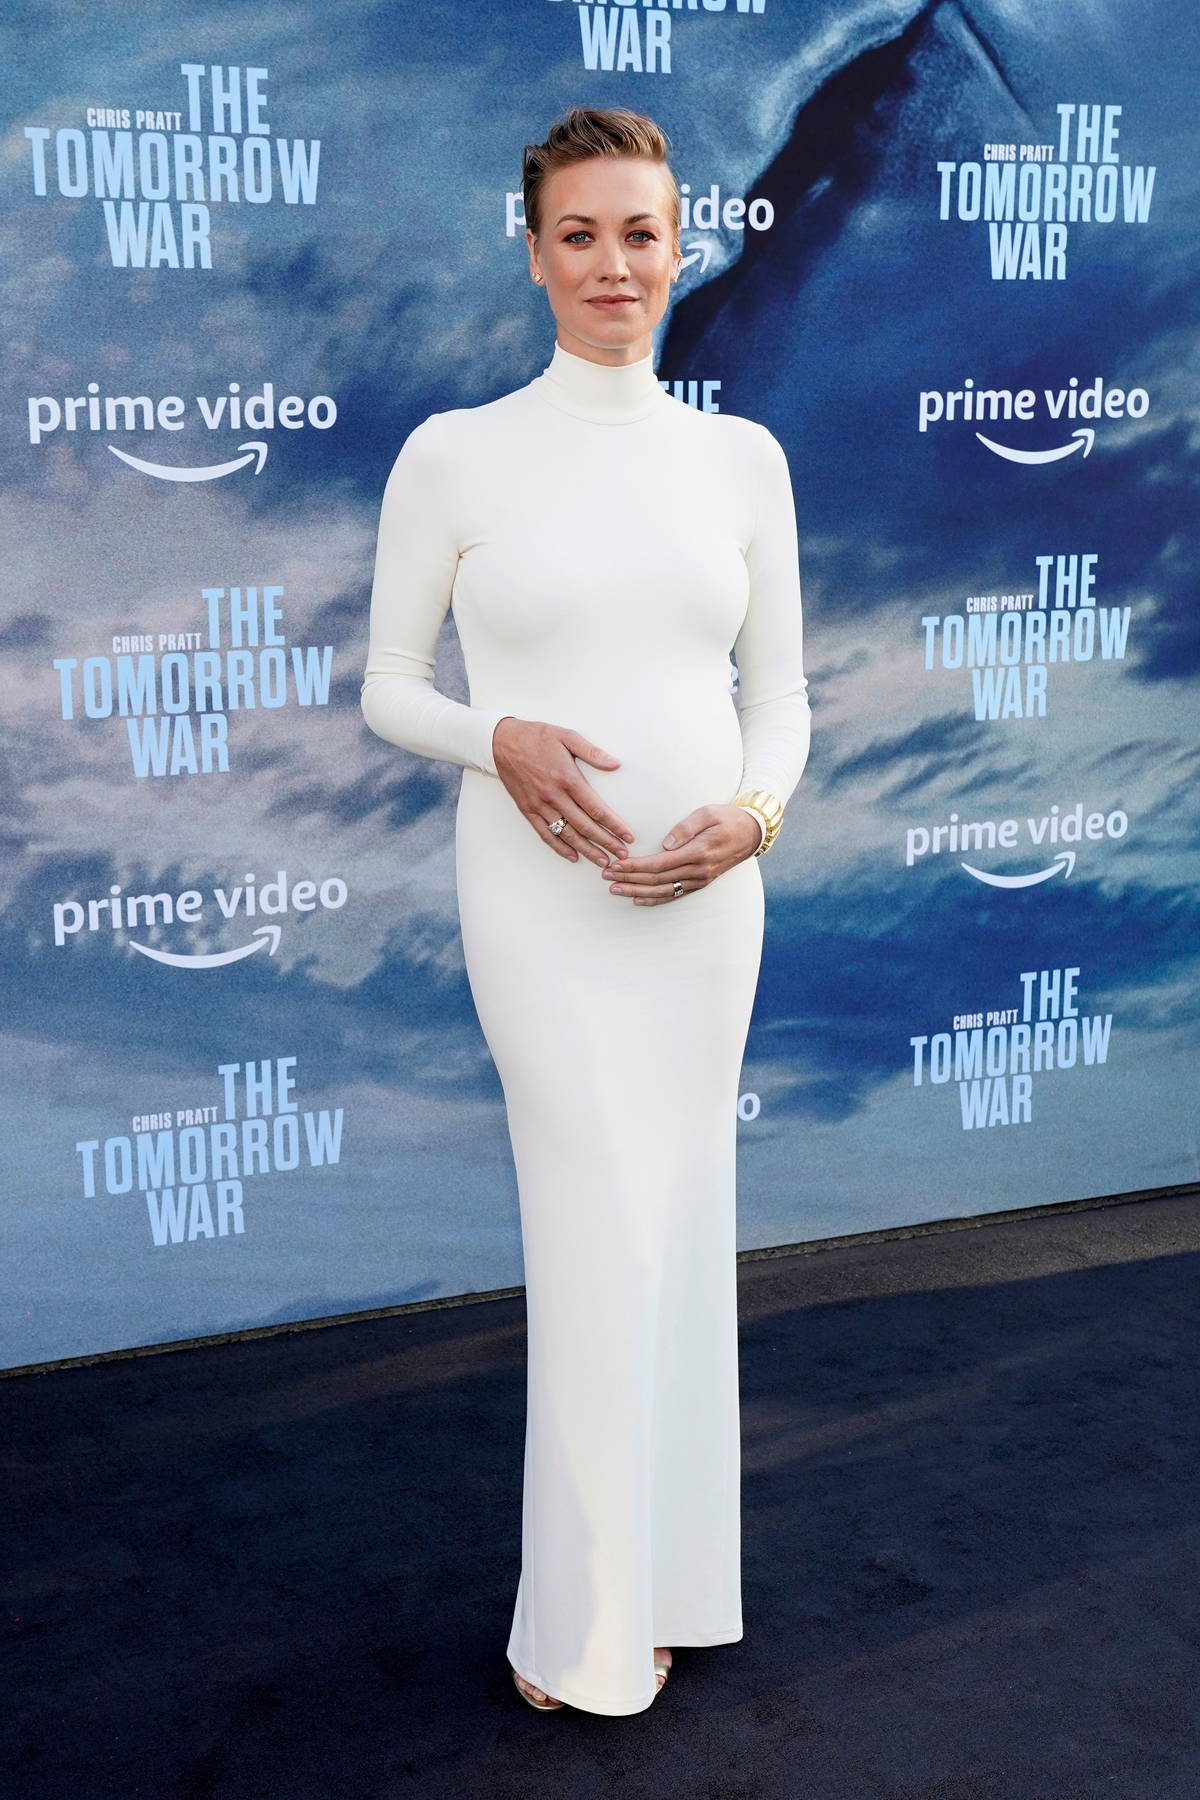 Yvonne Strahovski attends the Premiere of 'The Tomorrow War' at Banc of California Stadium in Los Angeles